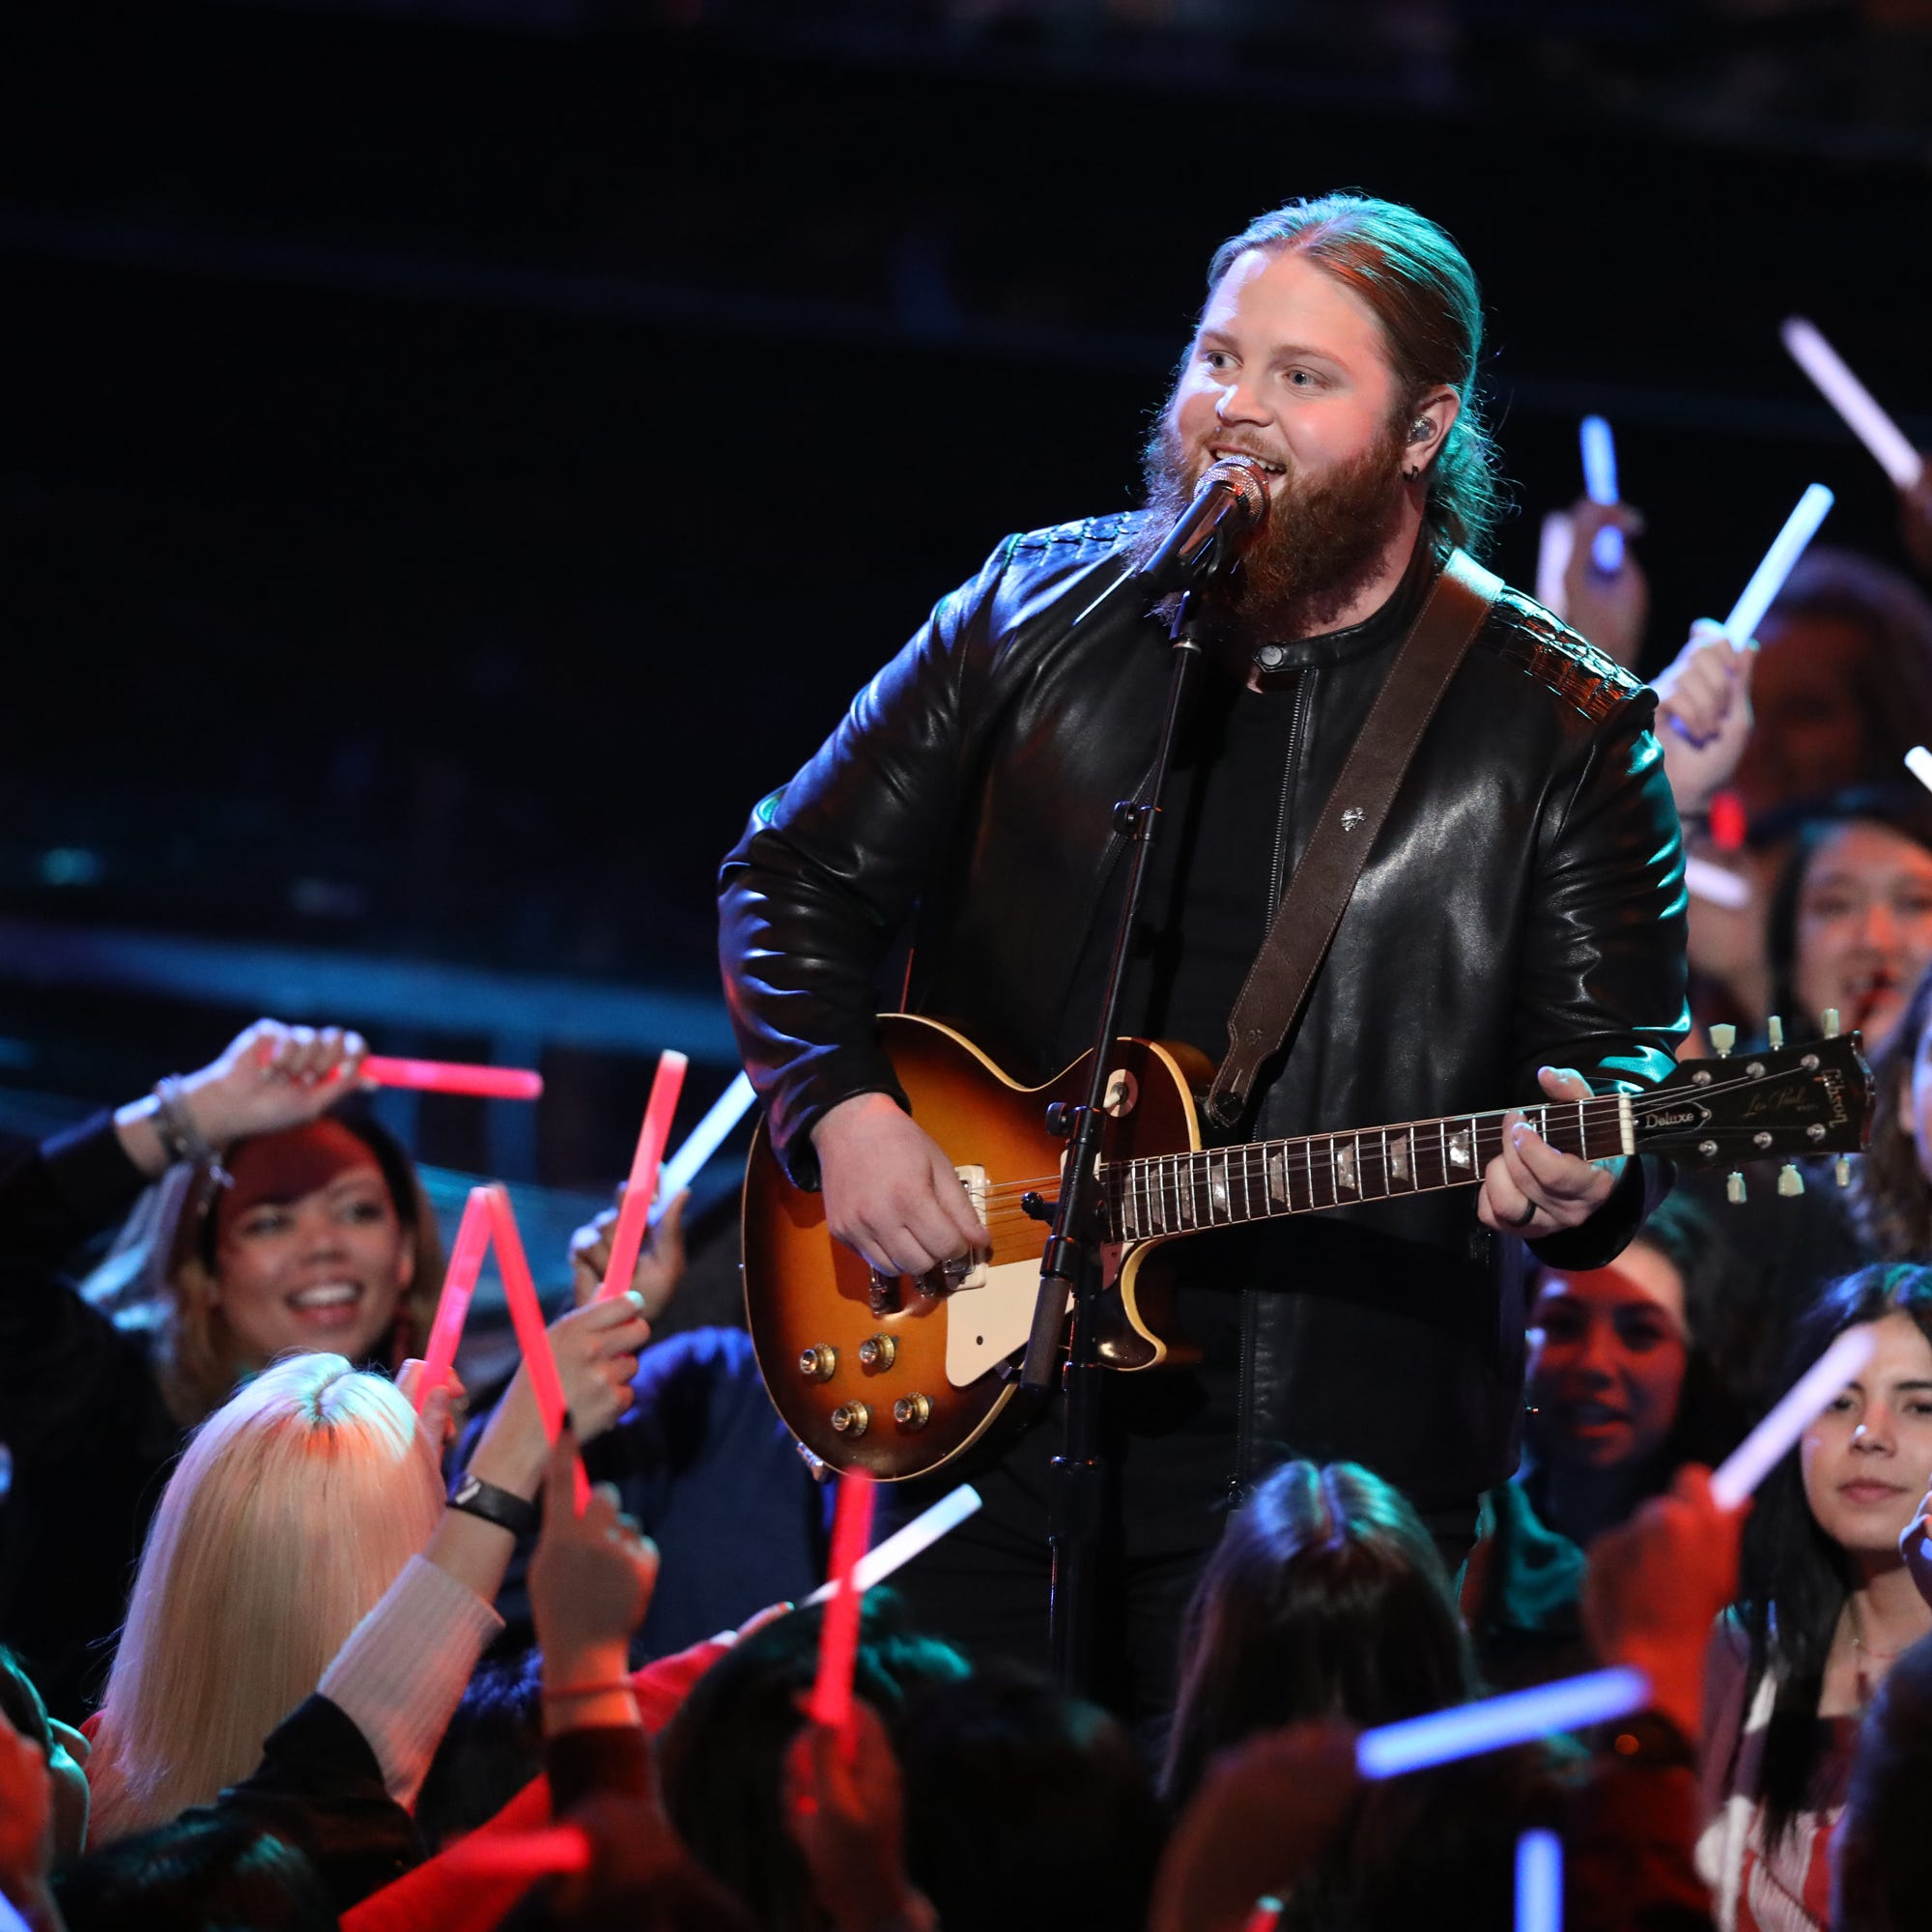 Wisconsin's Chris Kroeze brings A game to 'The Voice' finale, powerful new song 'Human'